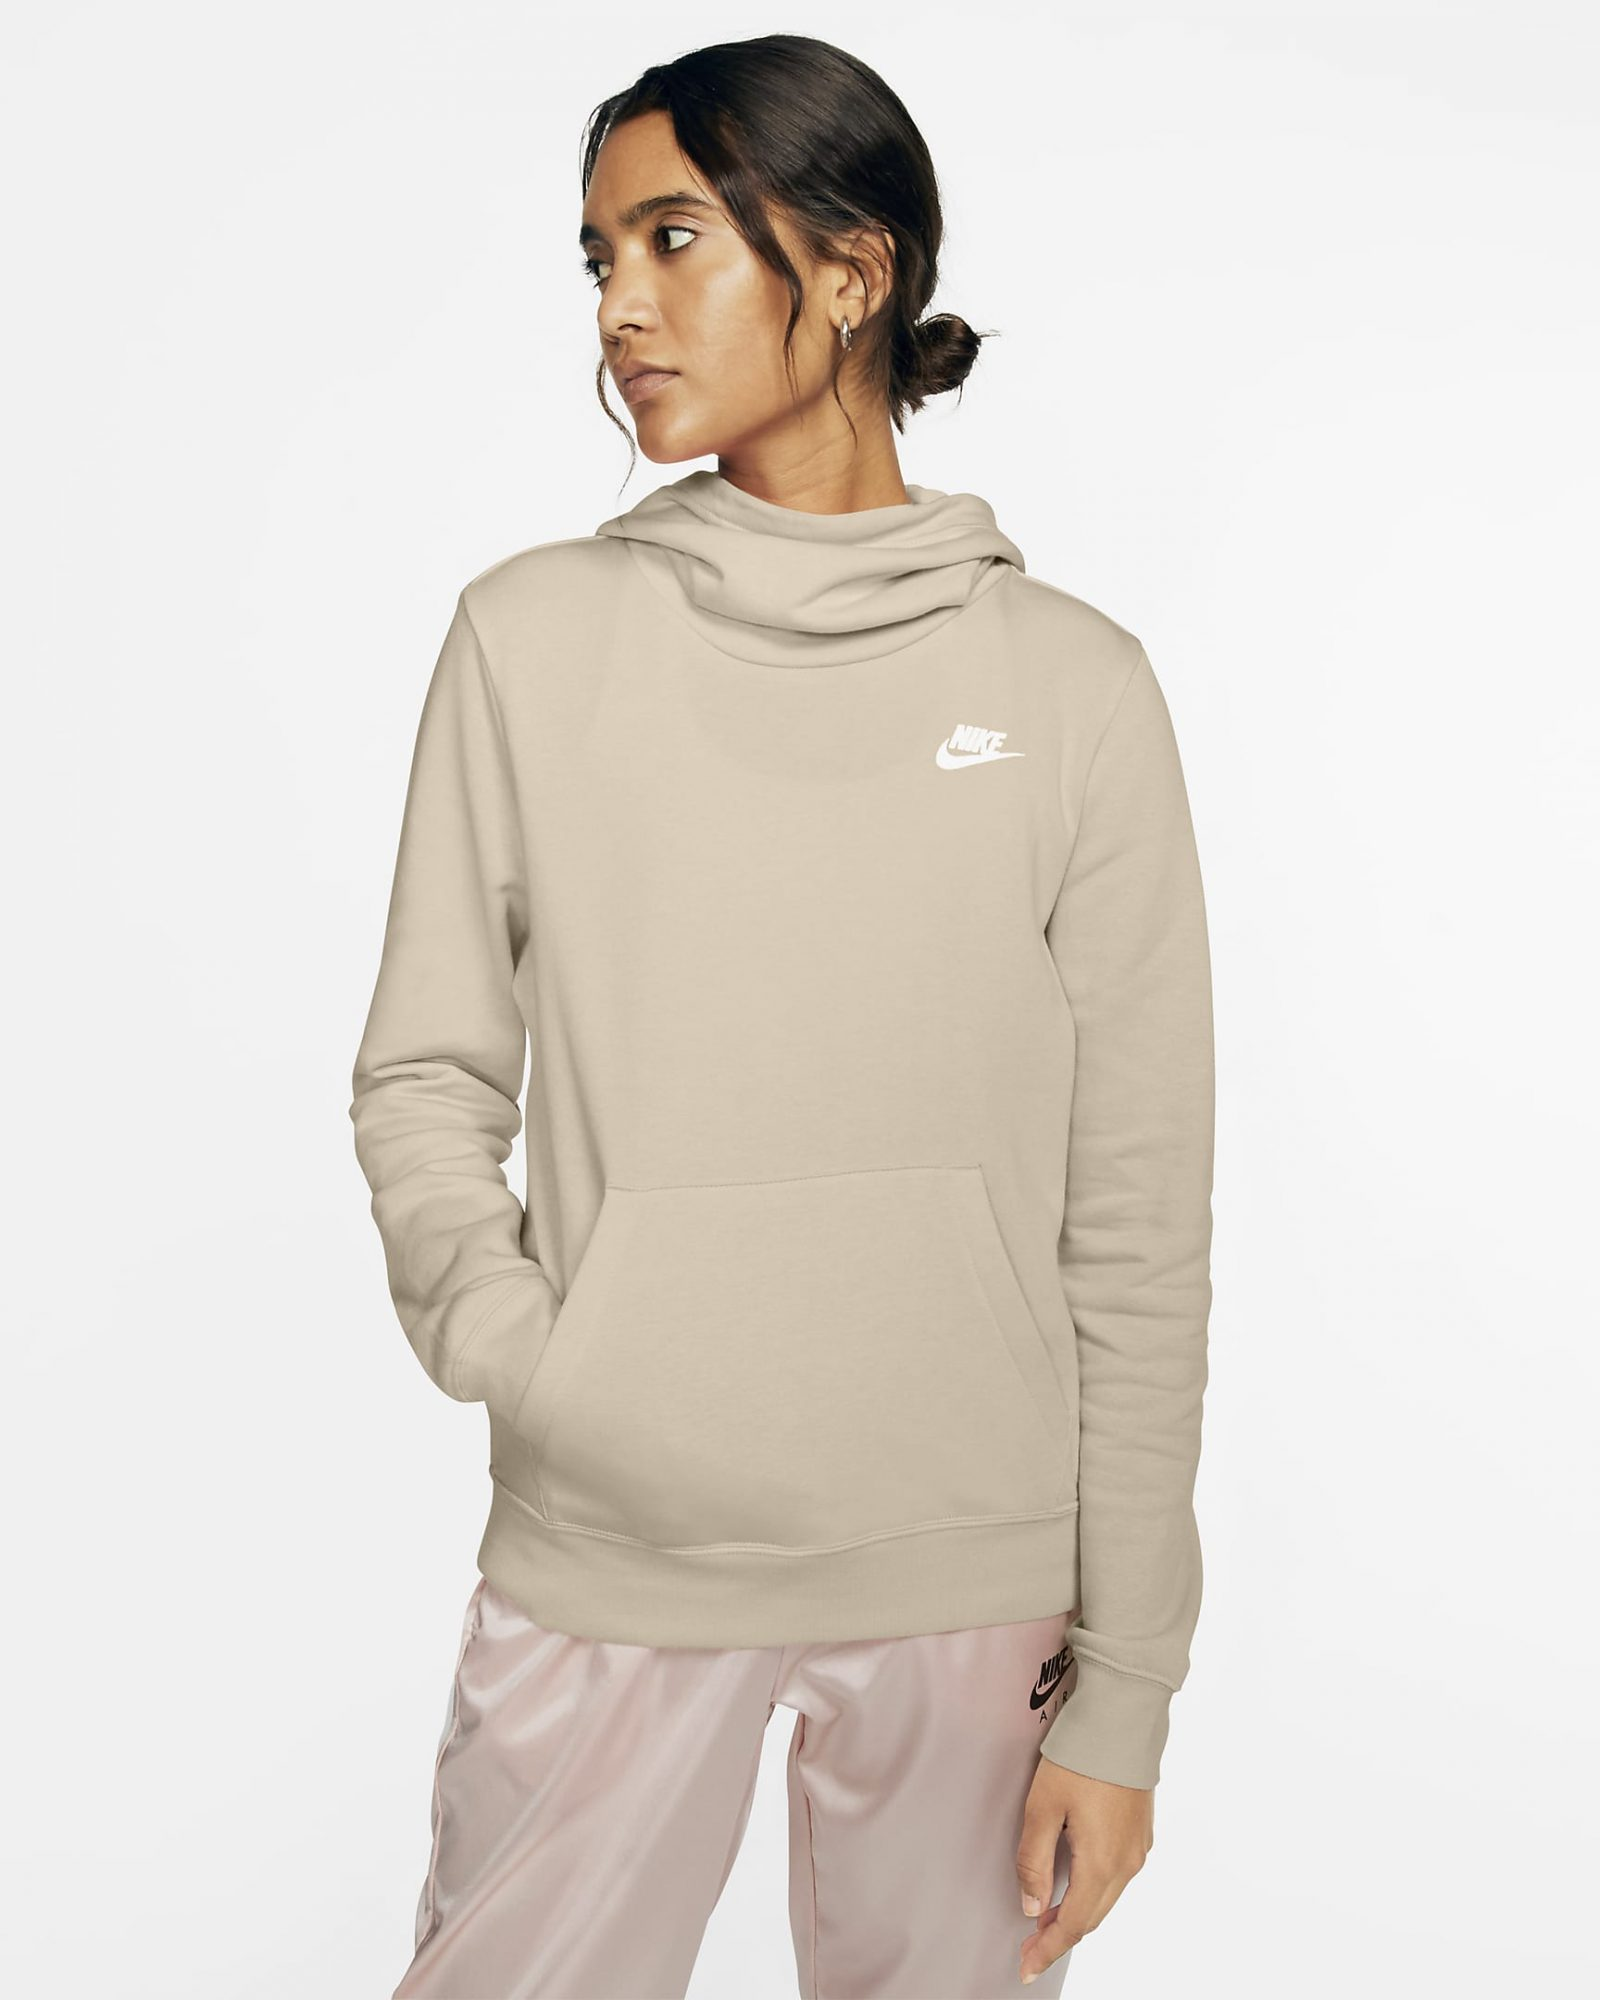 Nike sweatshirt best activewear brands